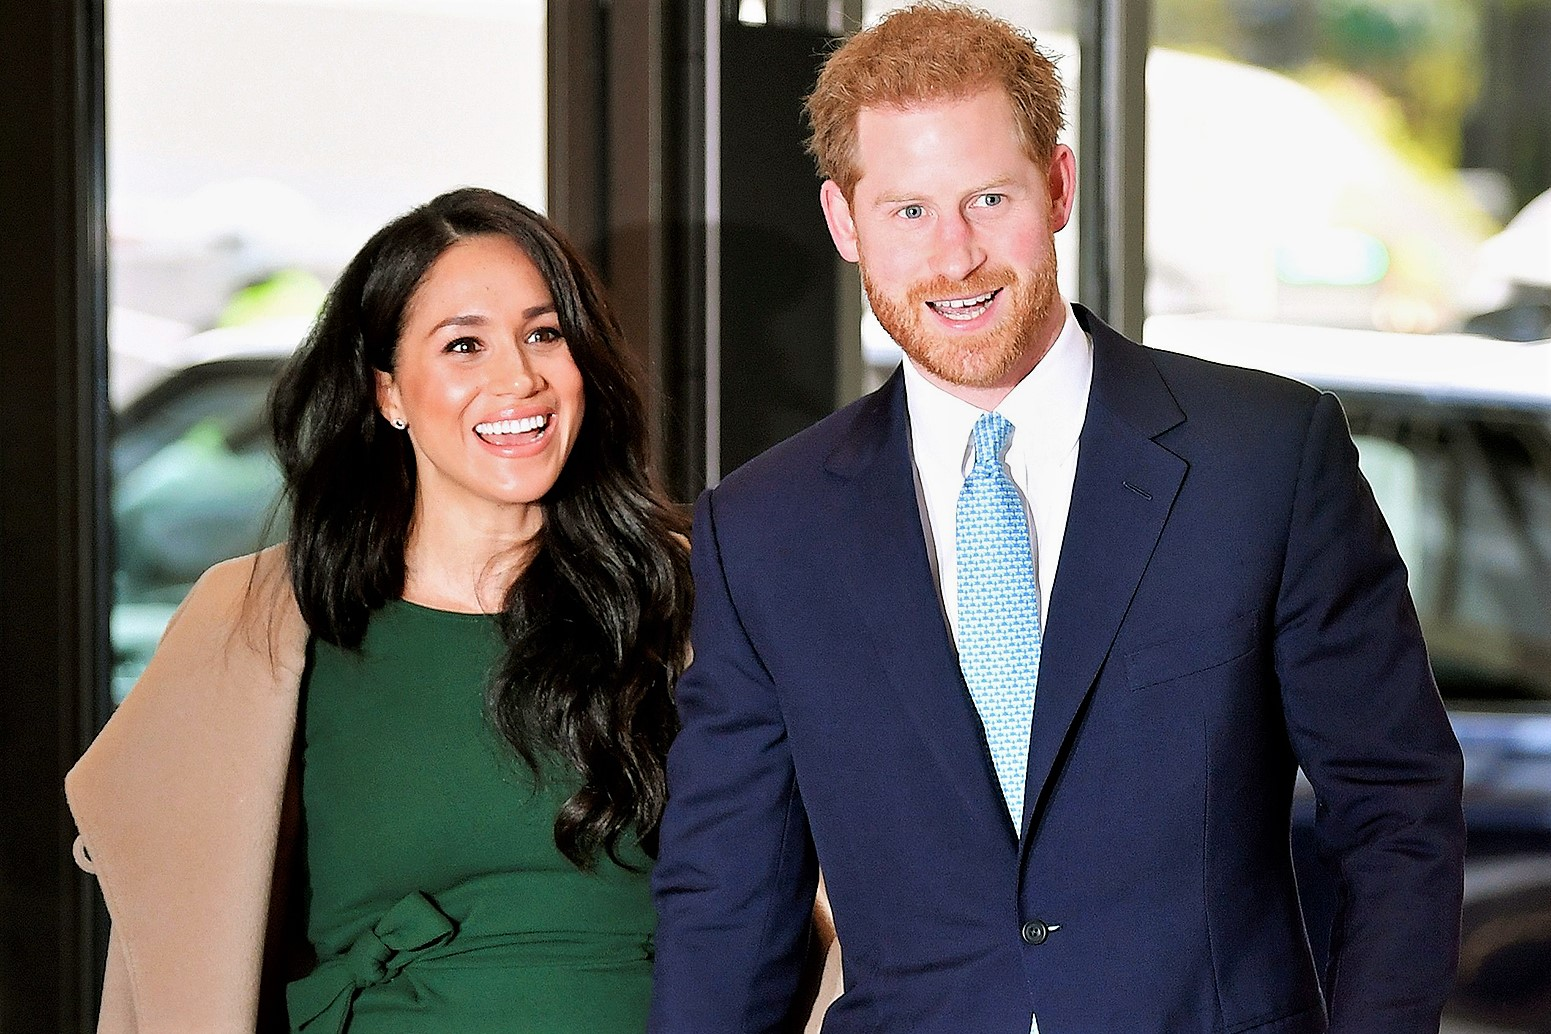 Green Dress Meghan Markle and Prince Harry Walking WellChild Charity